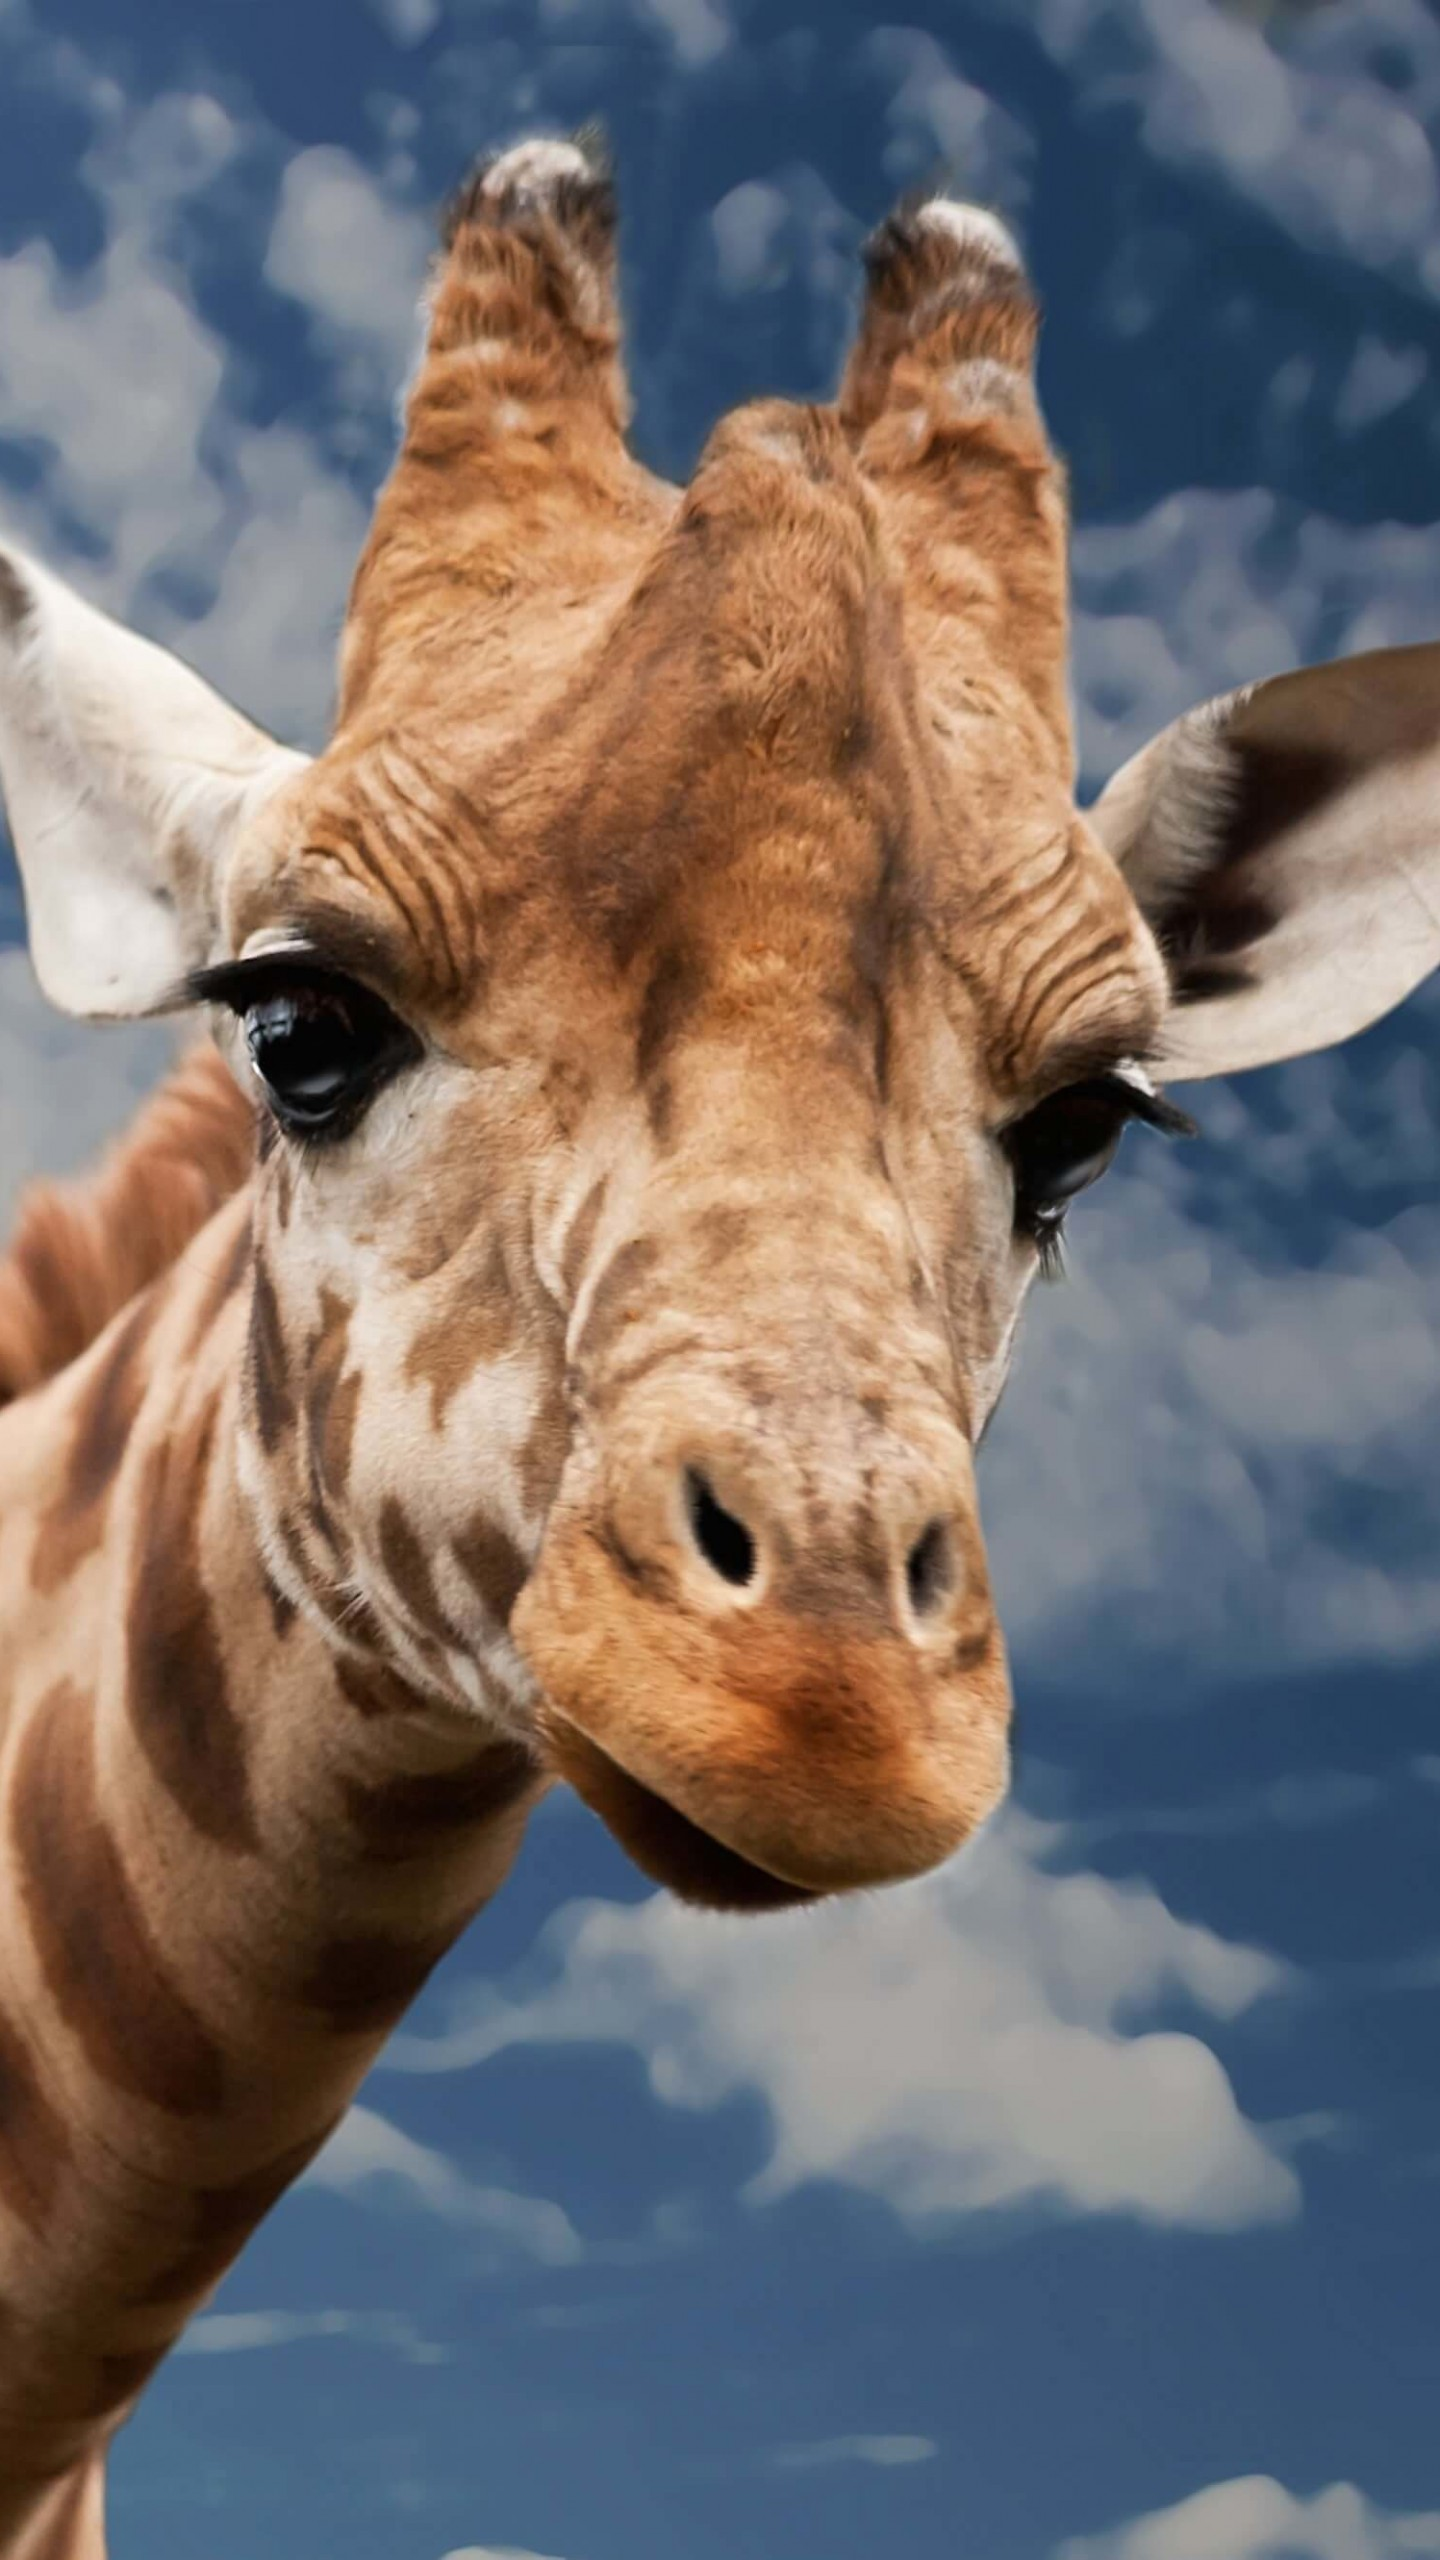 Funny Giraffe Wallpaper for LG G3